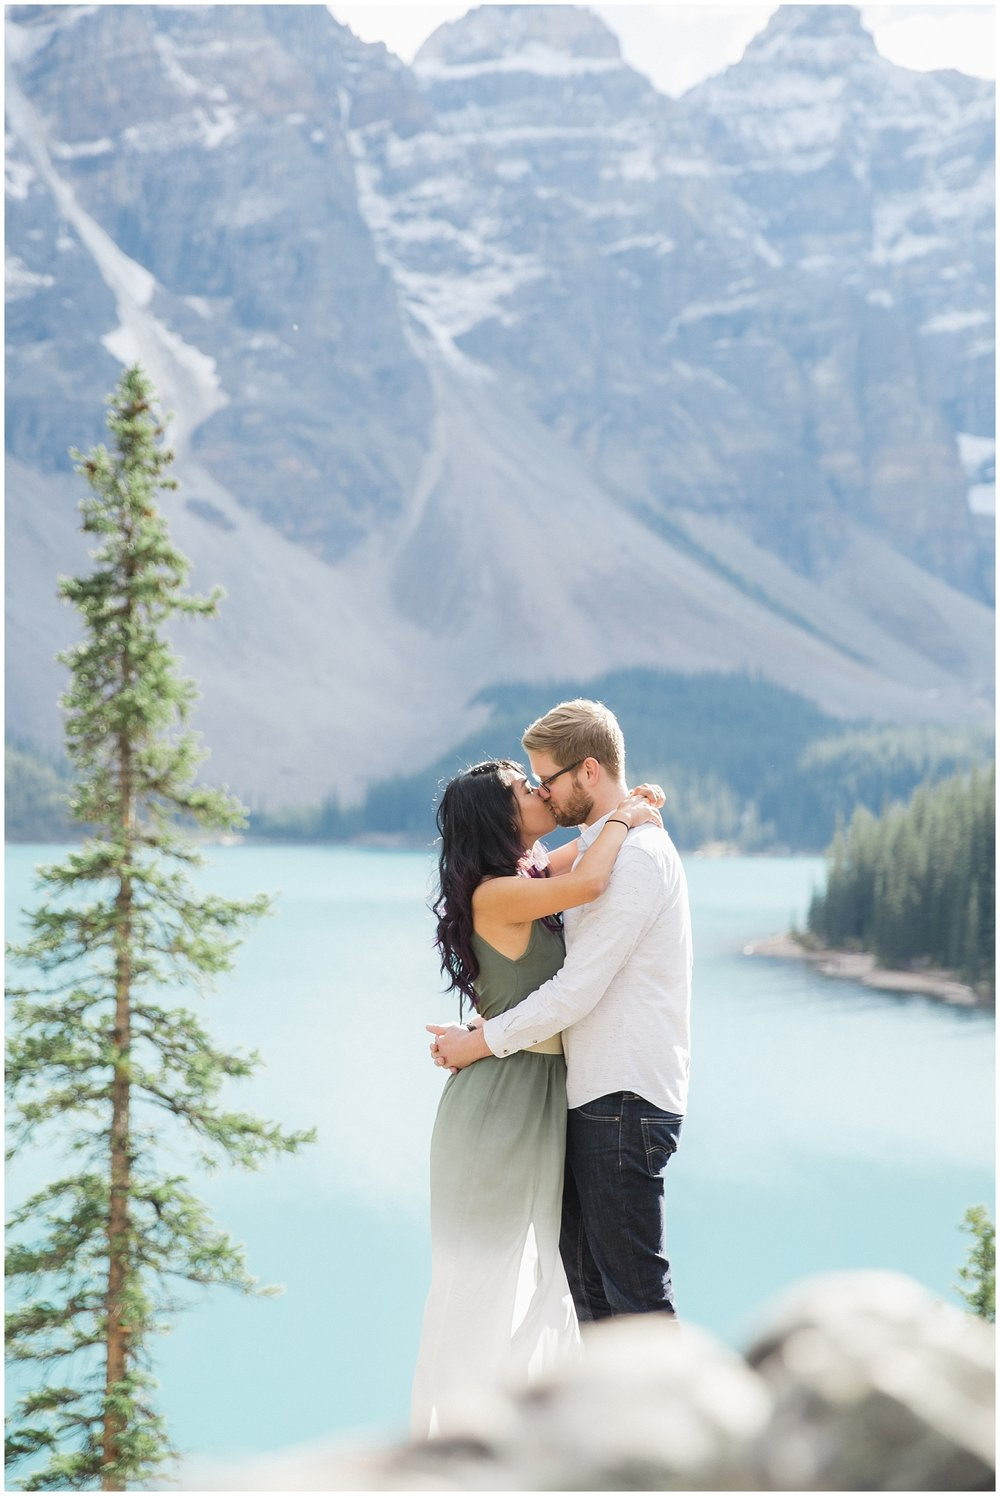 Lake_Moraine_Engagement_Photography_JandC_07_blog.jpg